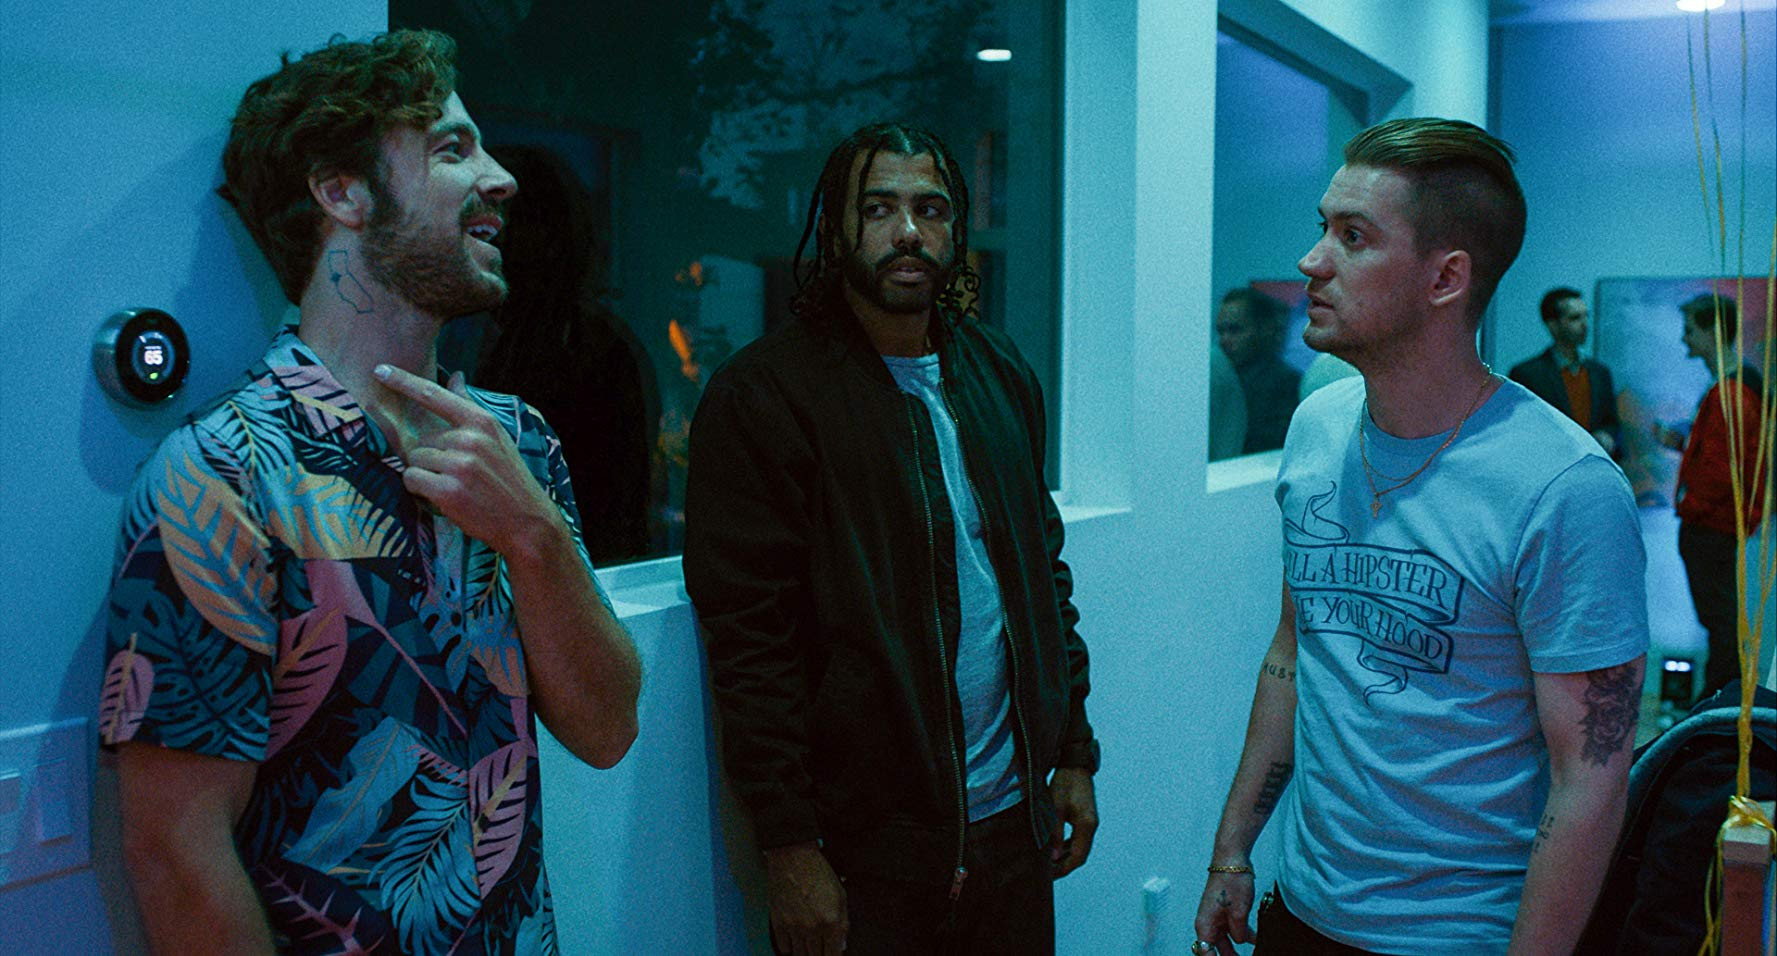 Blindspotting (Carlos López Estrada, 2018)  About racism, privilege, gentrification and appropriation of place and language in Oakland. Parts of the film I related to here in Dubai.